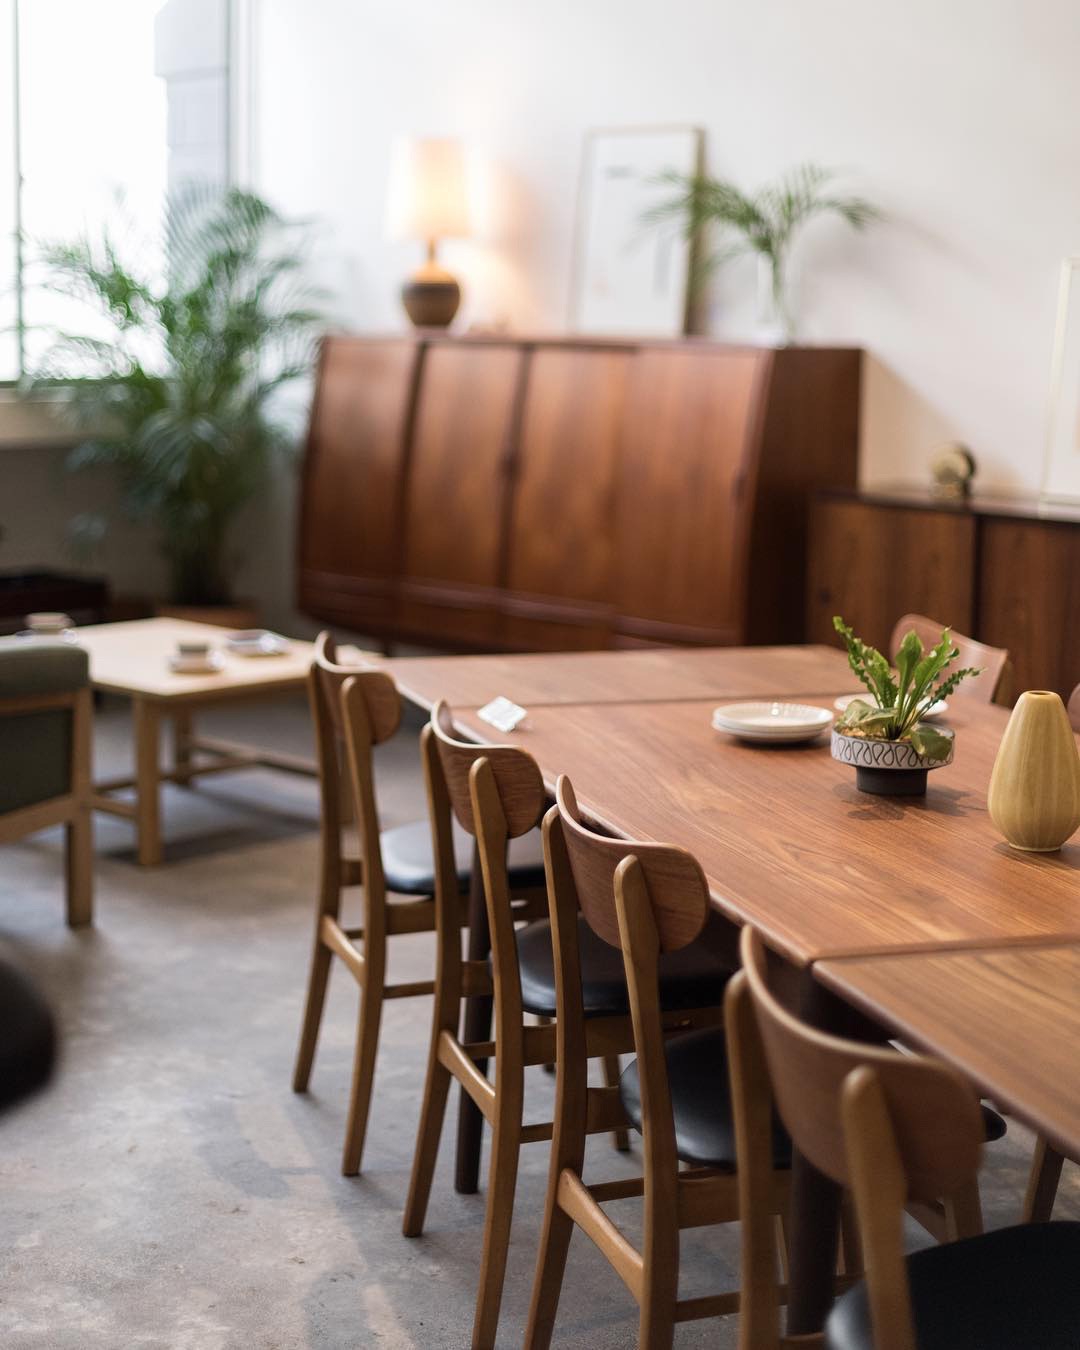 Shop Antique Furniture Online Fresh Here are the 10 Best Places to Shop for Vintage Scandinavian